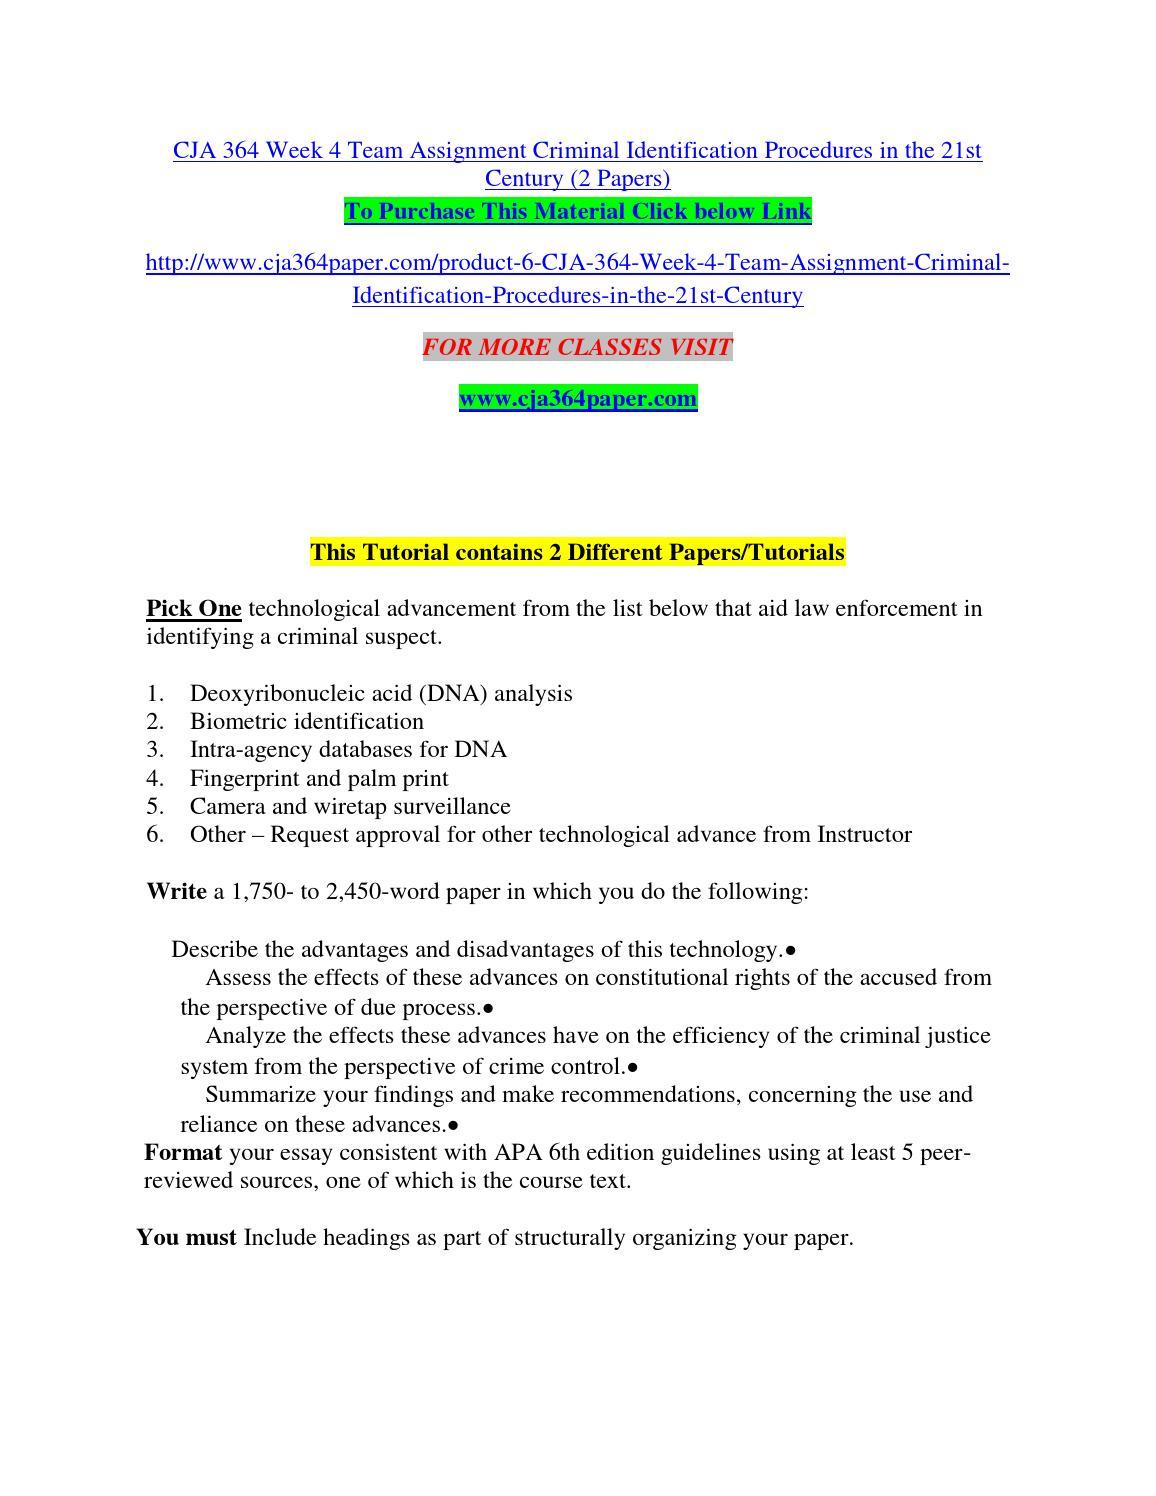 Criminal Identification Procedures in the 21st Century - Research Paper Example